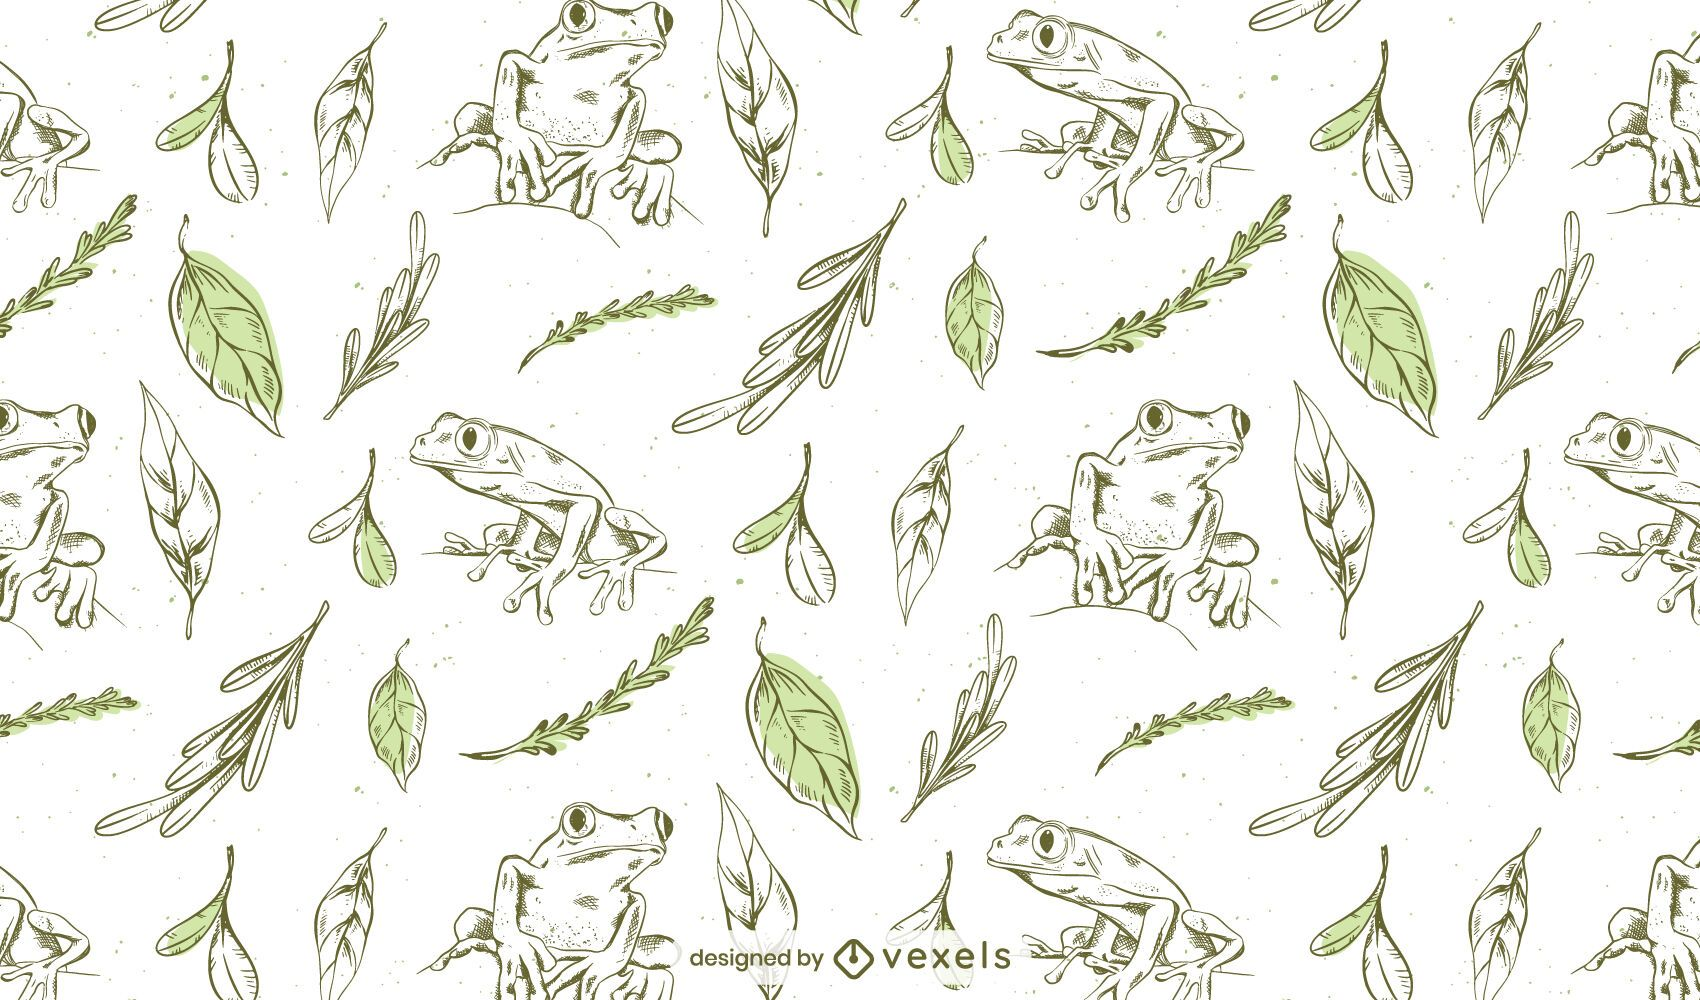 Frogs hand drawn pattern design